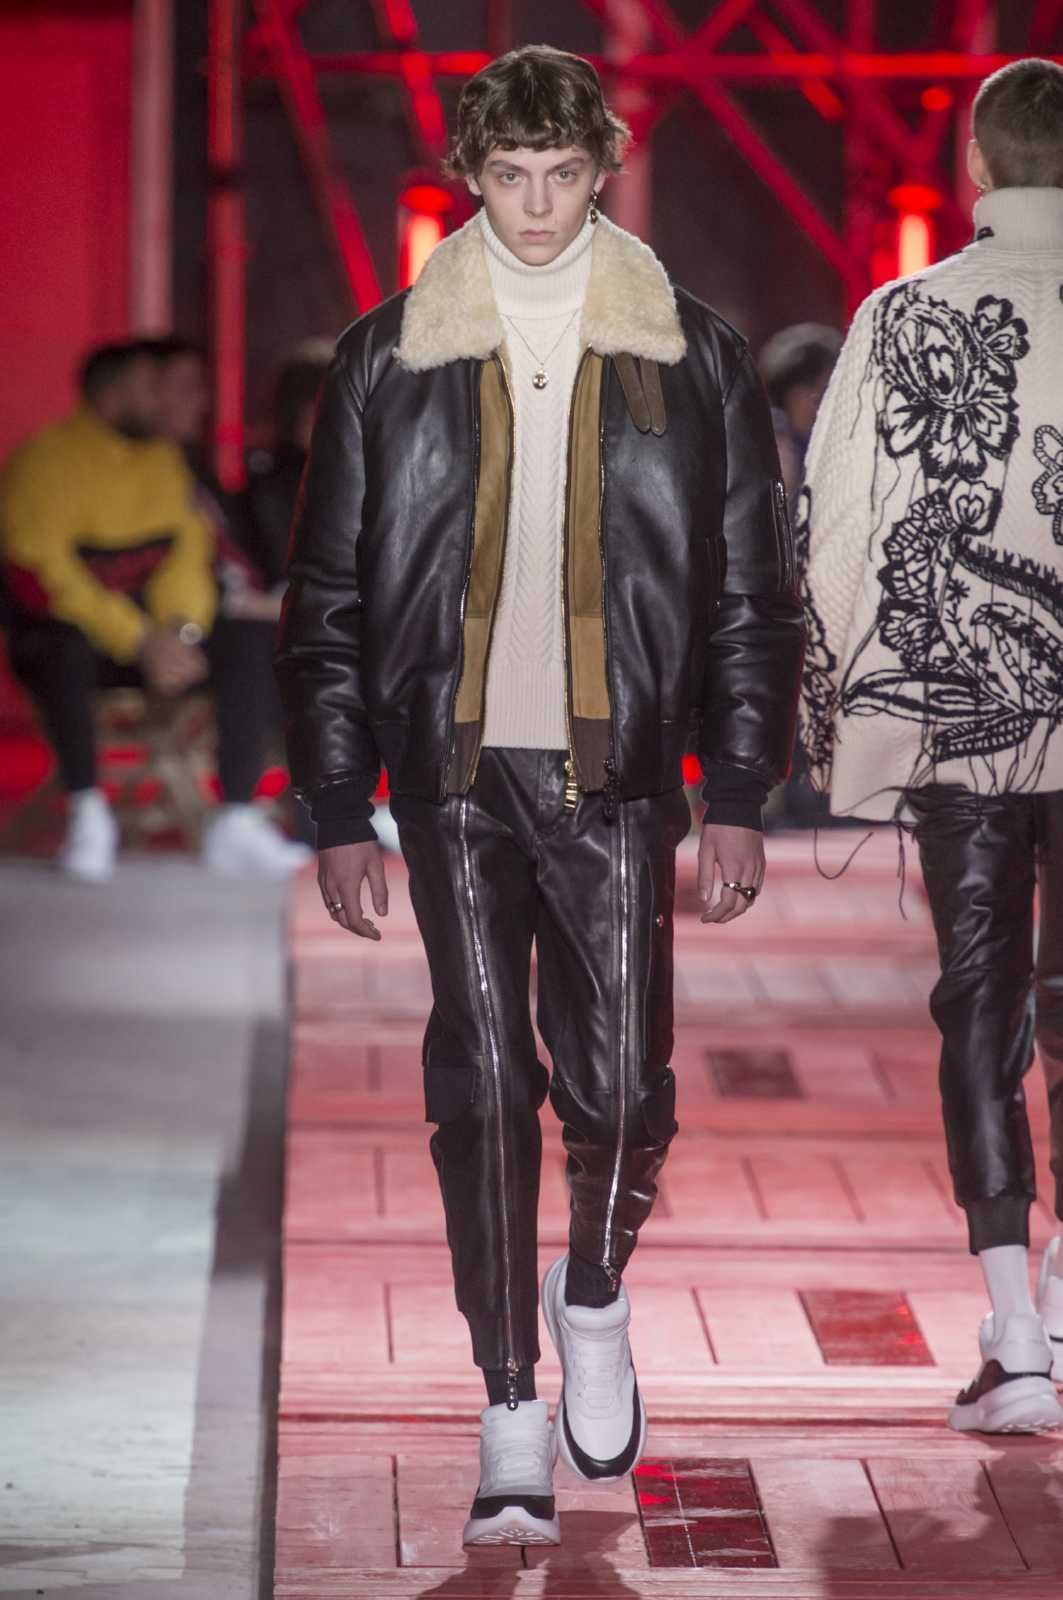 61fa3b2b372e9 Male Fashion Trends: Alexander McQueen Fall-Winter 2018-2019 | Paris  Fashion Week - CHAQUETA CUELLO BORREGO #FashionTrends2019